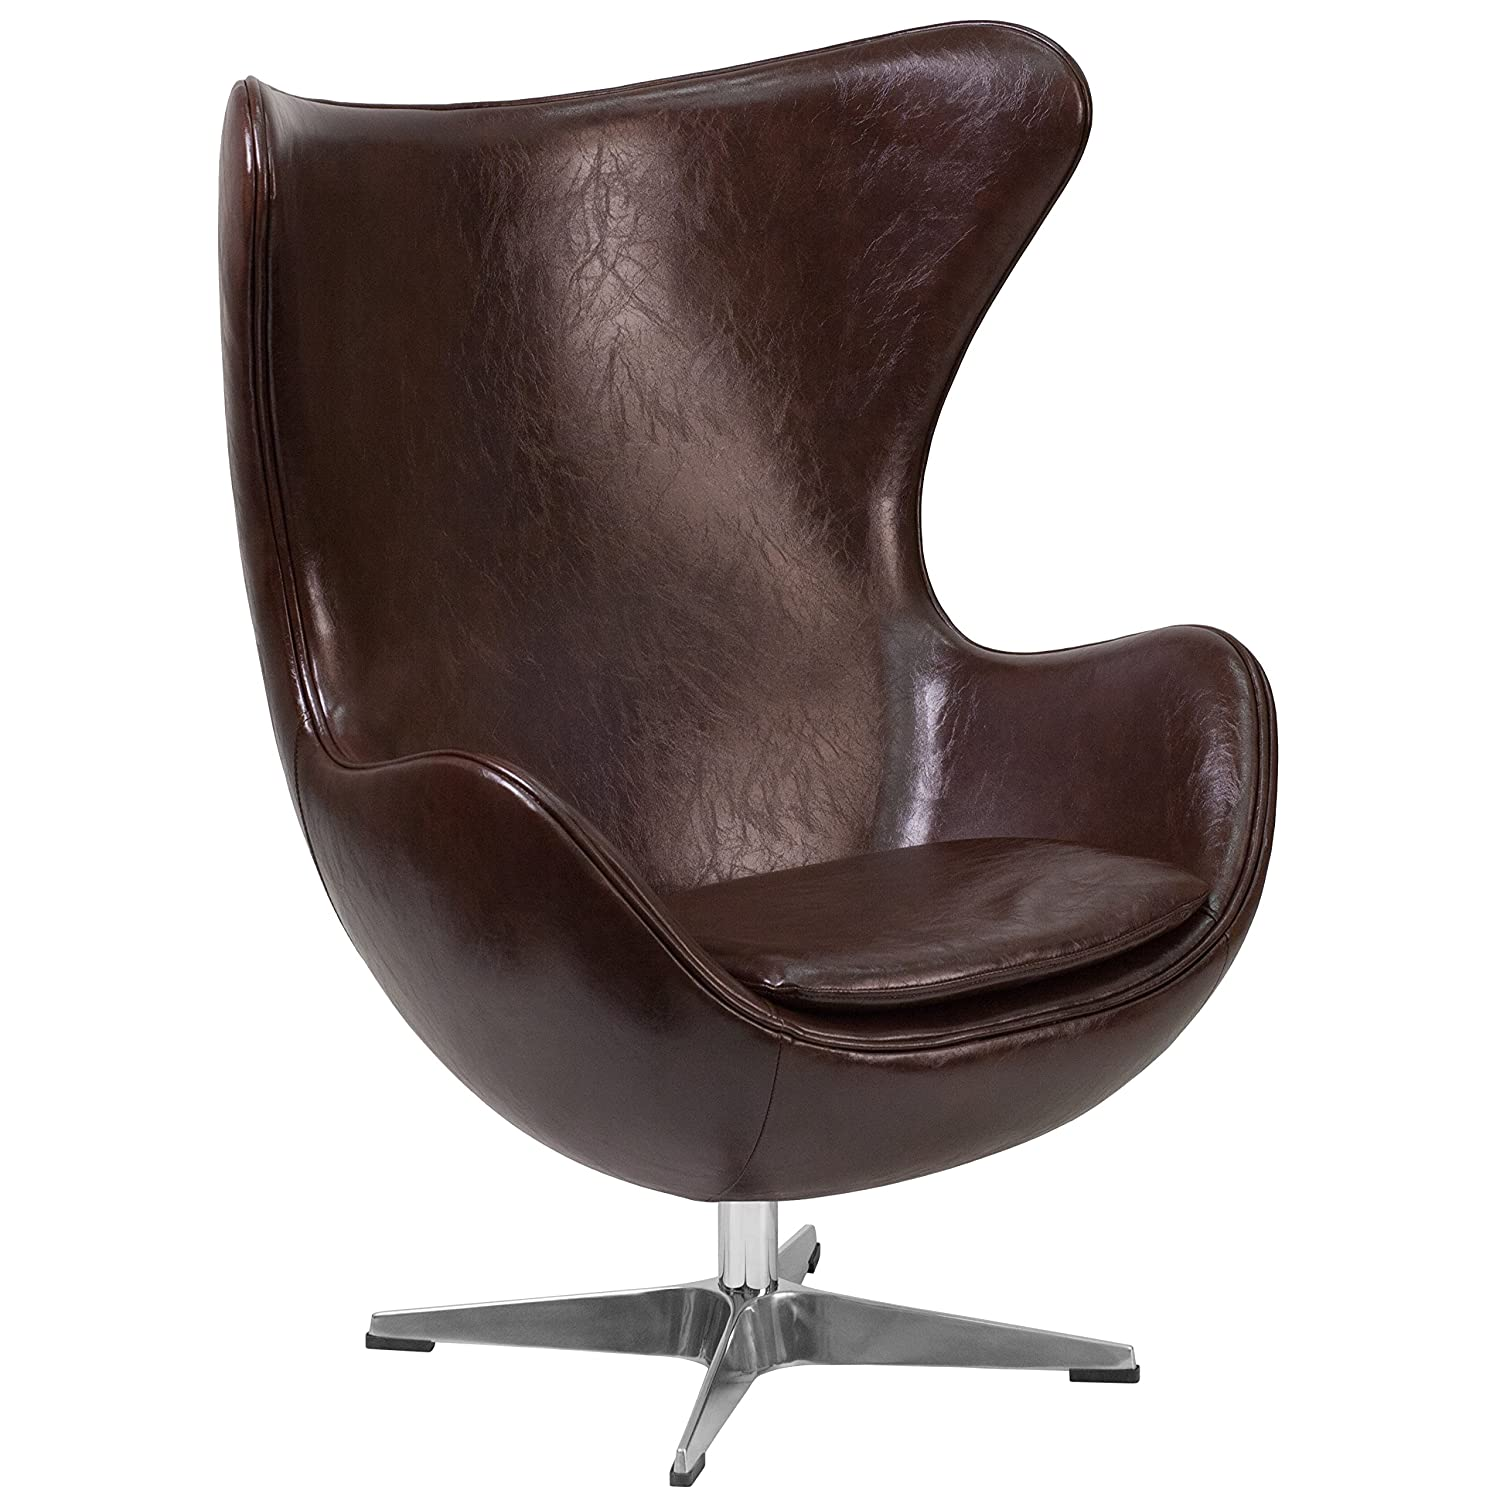 amazoncom flash furniture brown leather egg chair with tilt lock mechanism kitchen dining - Silla Egg